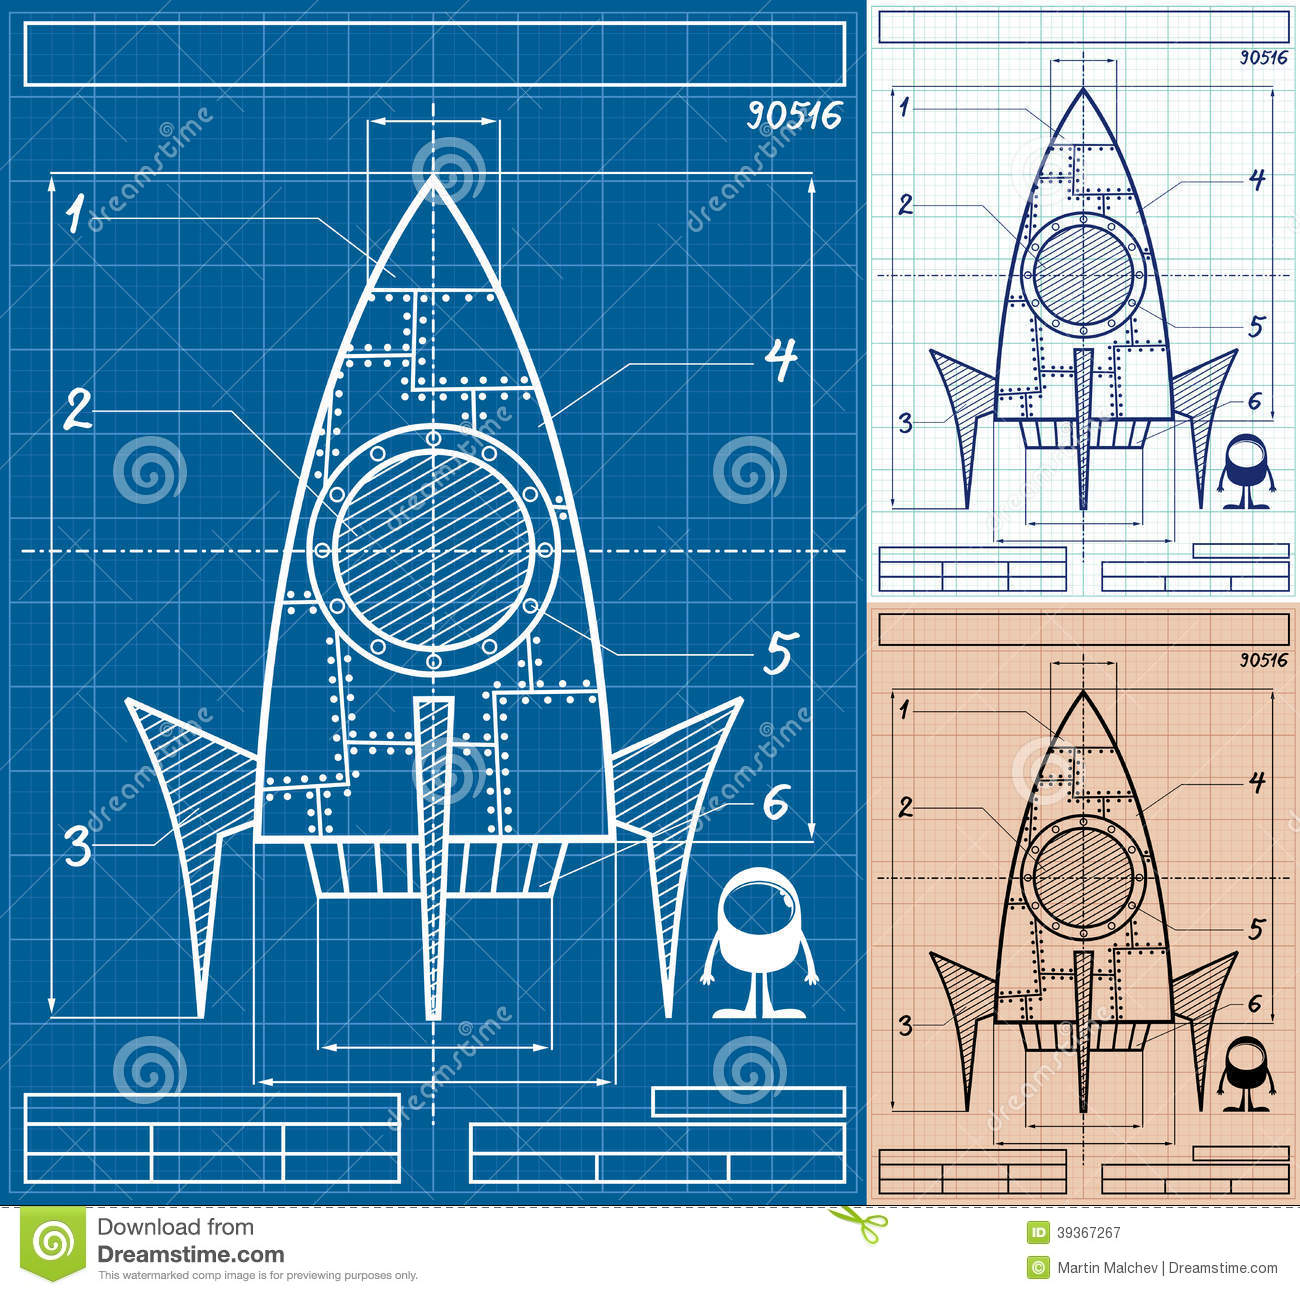 Rocket blueprint cartoon stock vector illustration of for Blueprint creator online free